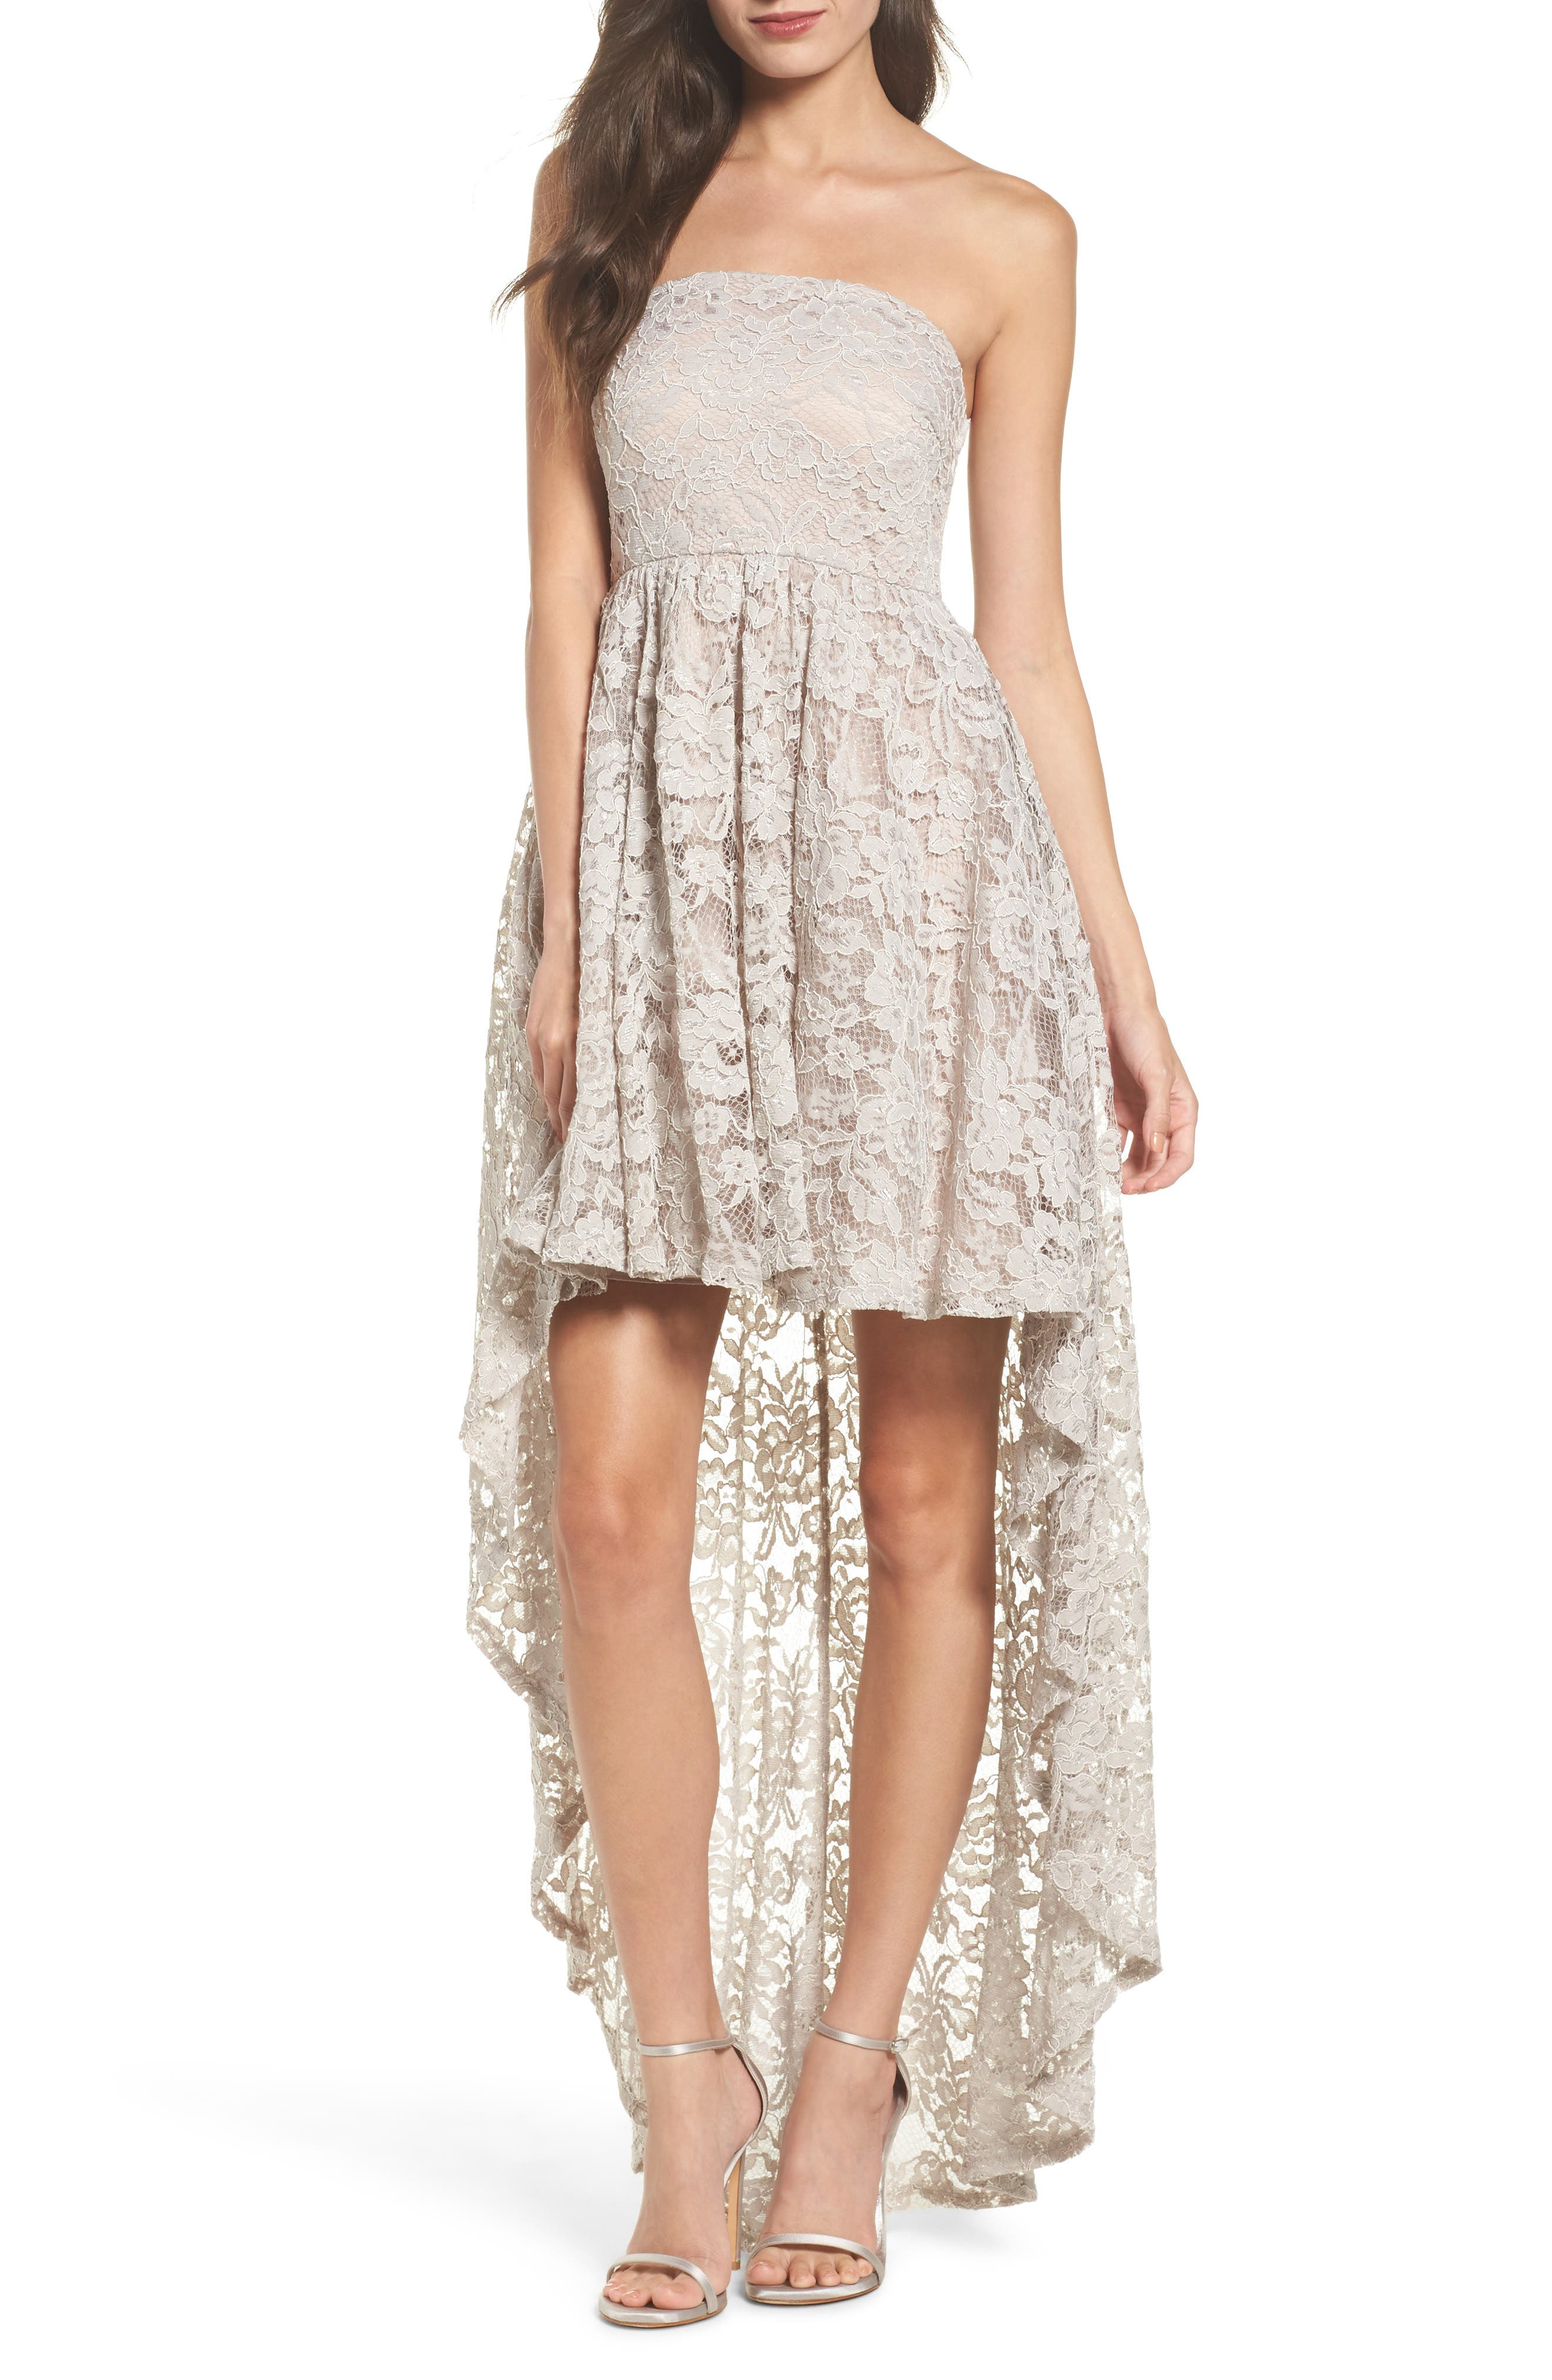 Main Image - Sequin Hearts Strapless Lace High/Low Dress